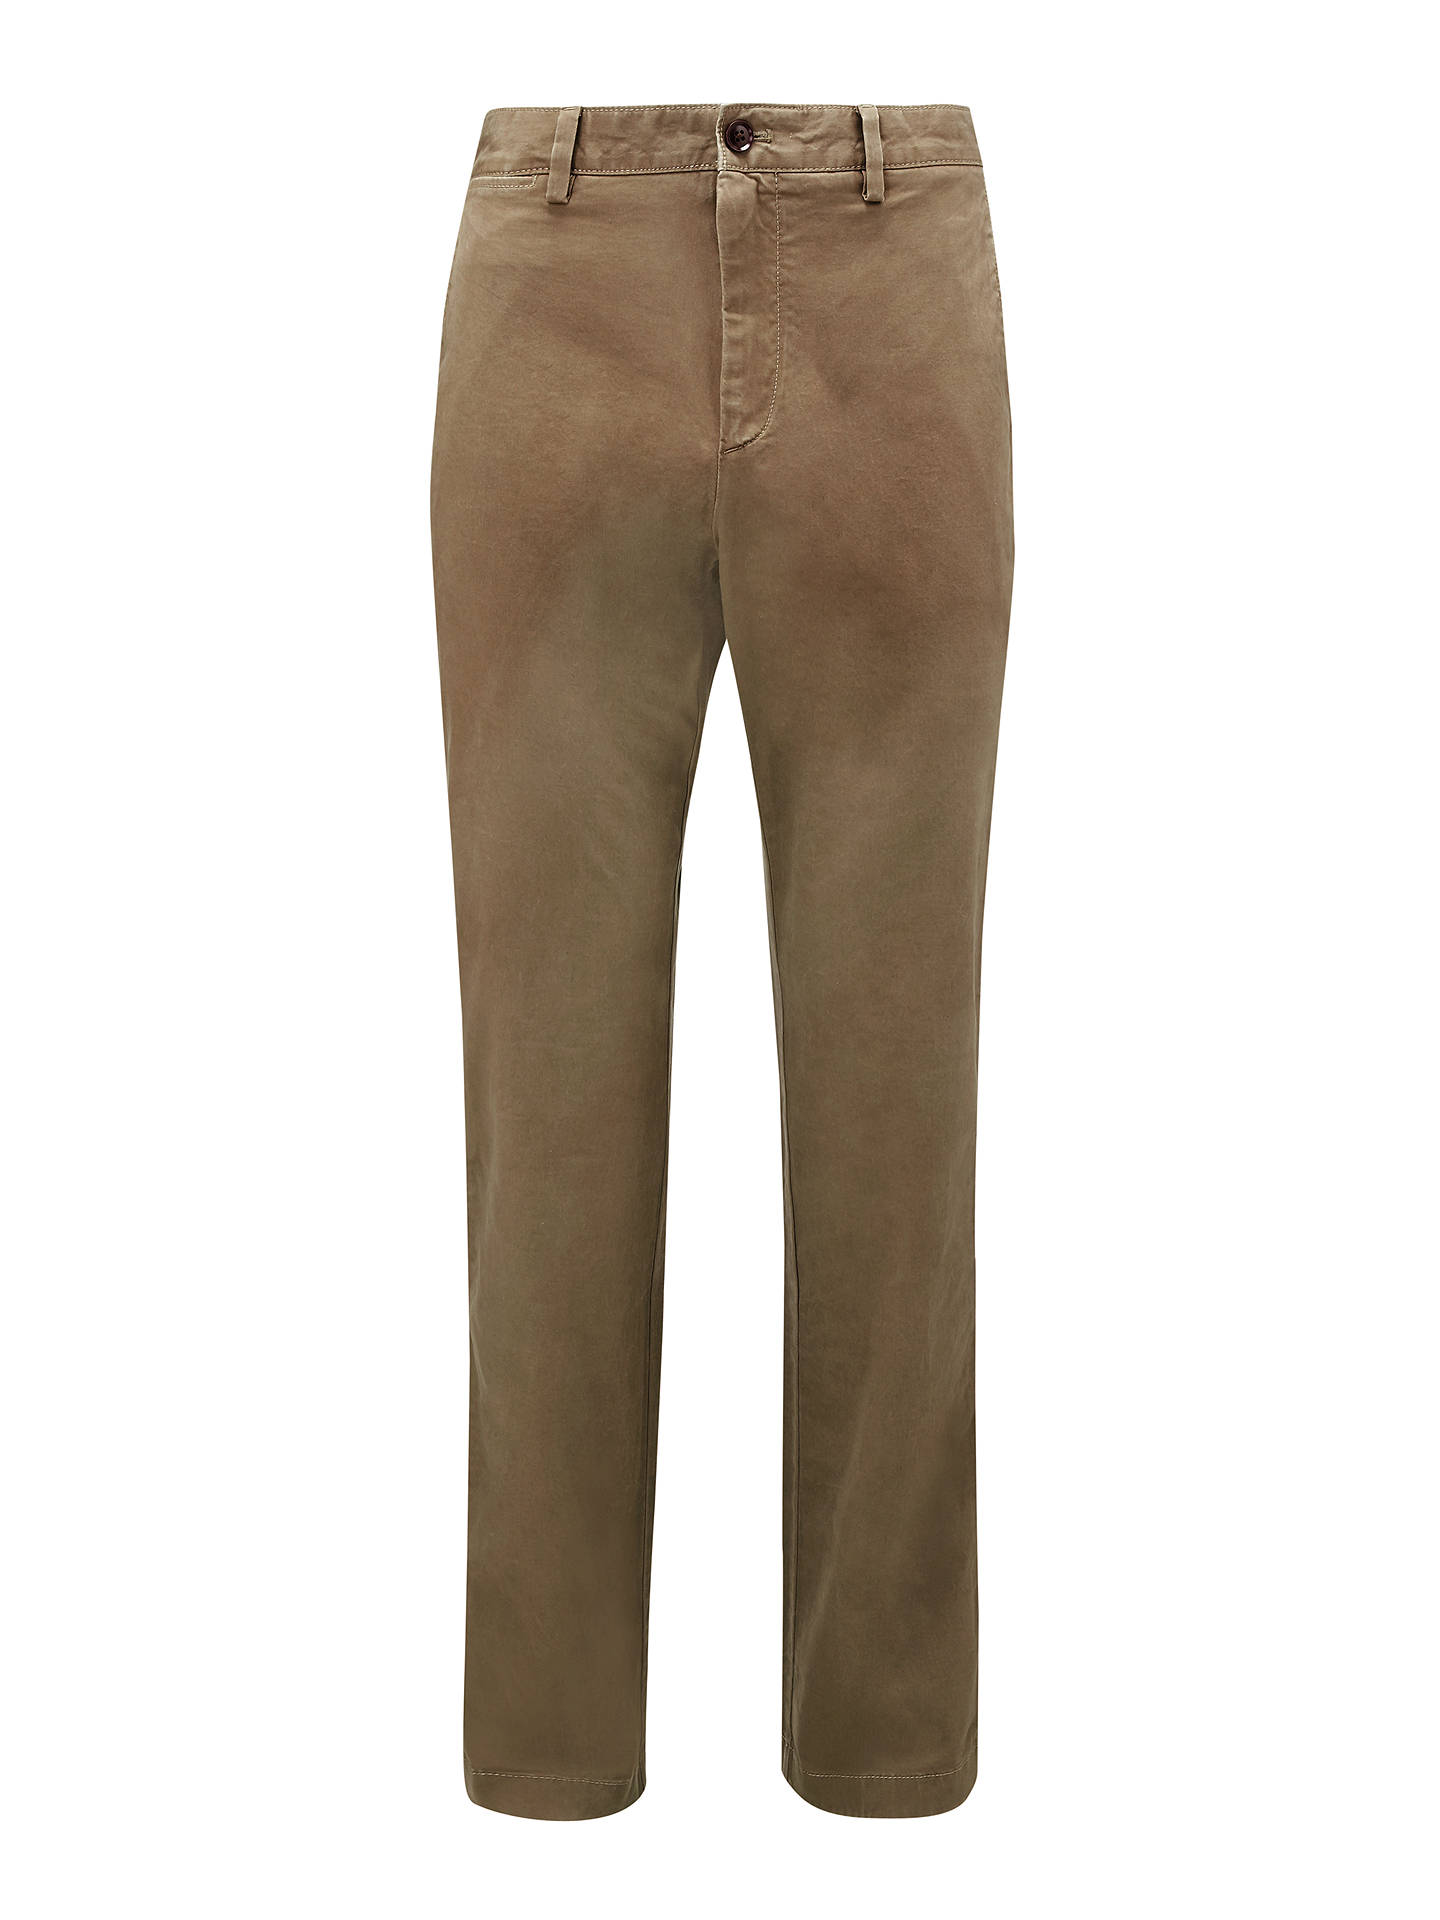 Buy John Lewis & Partners Essential Straight Cut Chinos, Taupe, 38S Online at johnlewis.com